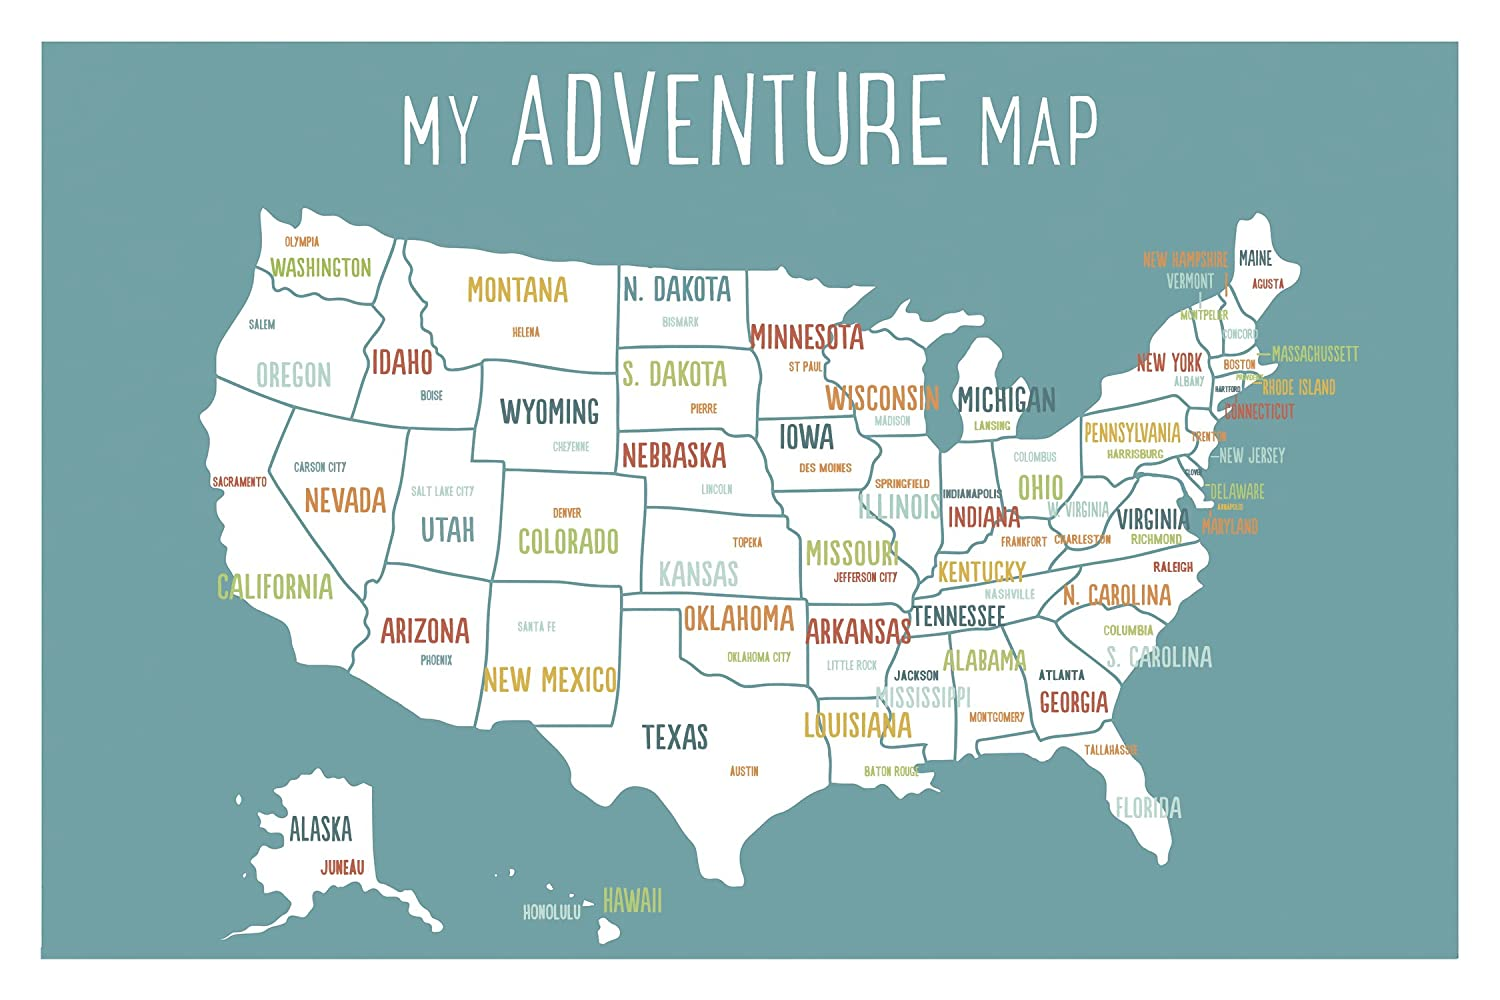 Amazon.com : USA My Adventure Wall Map Art Print, 18 x 12 ... on map of usa states and capitals, map of brazil states and capitals, map of states with bodies of water, map of all 50 states game, map of midwestern states and capitals, map usa america, 50 us states map with capitals, states and their capitals, map of all countries and capitals, u s map of states with their capitals, western united states map with capitals, map of united states with capitals and national parks, all 50 states their capitals, map of all the states, usa map with state names and capitals, map of midwest states and capitals, 50 of the us capitals,